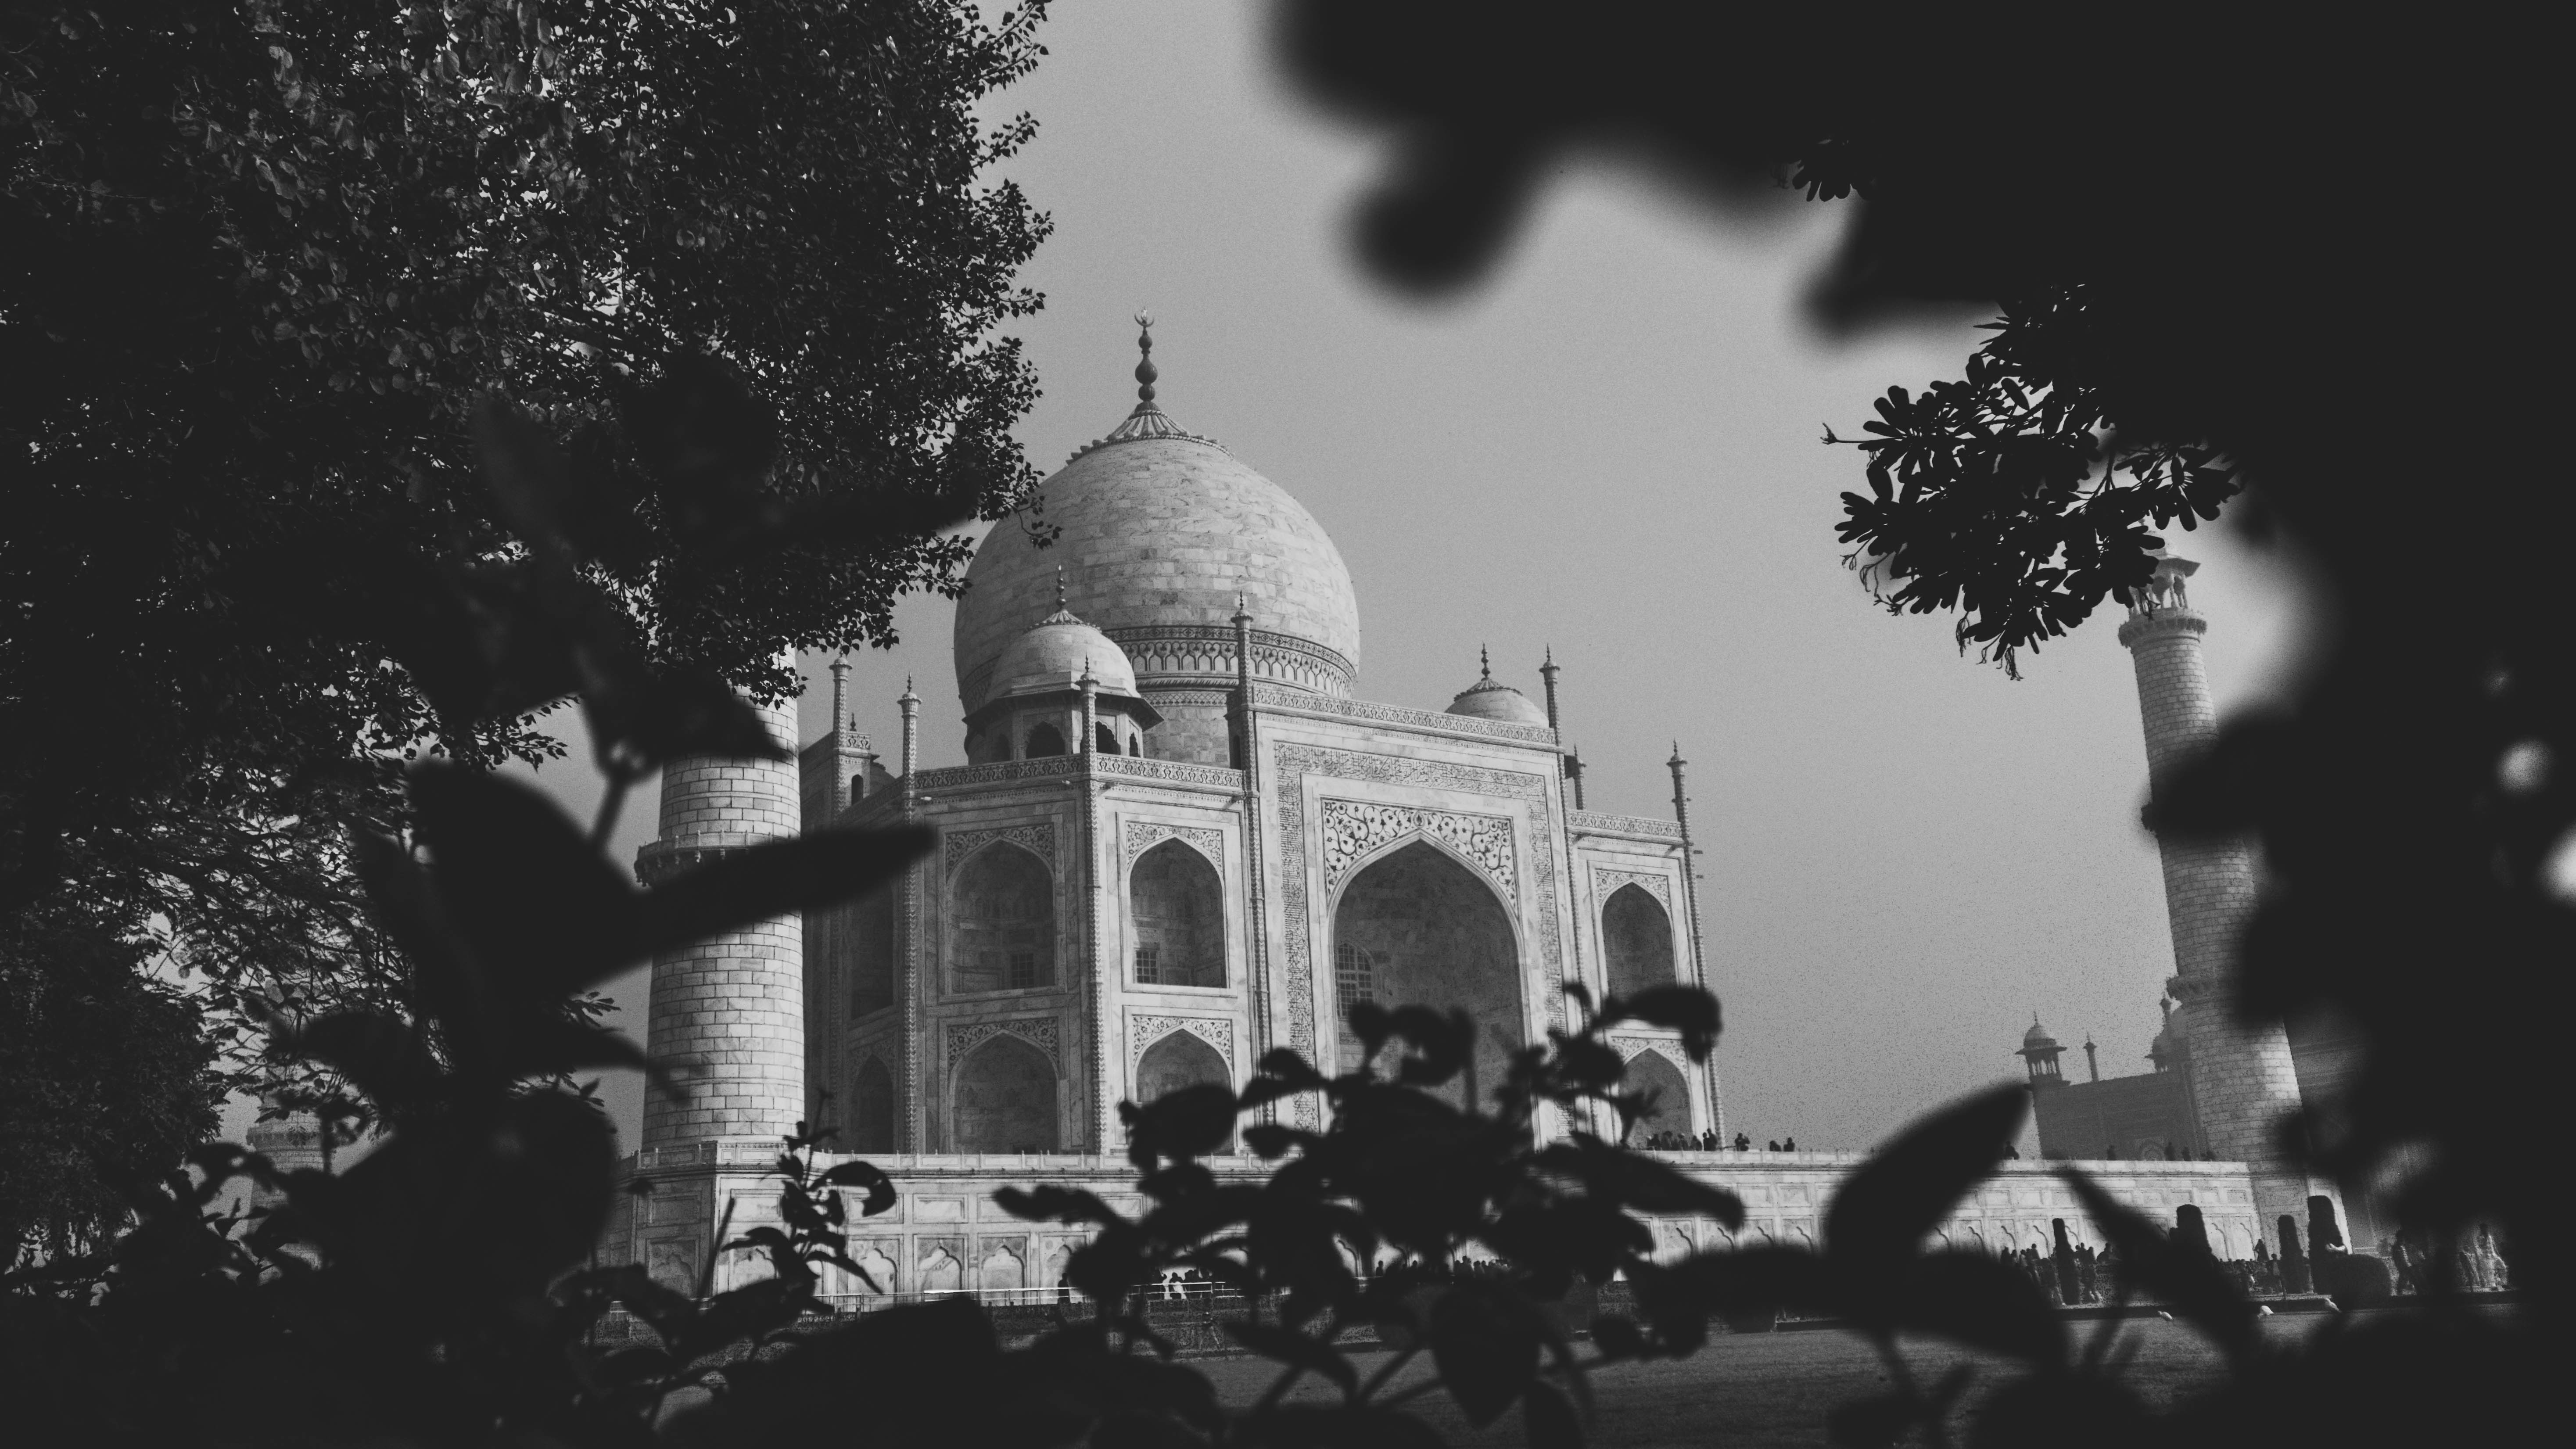 The Taj Mahal Myth That Won't Die